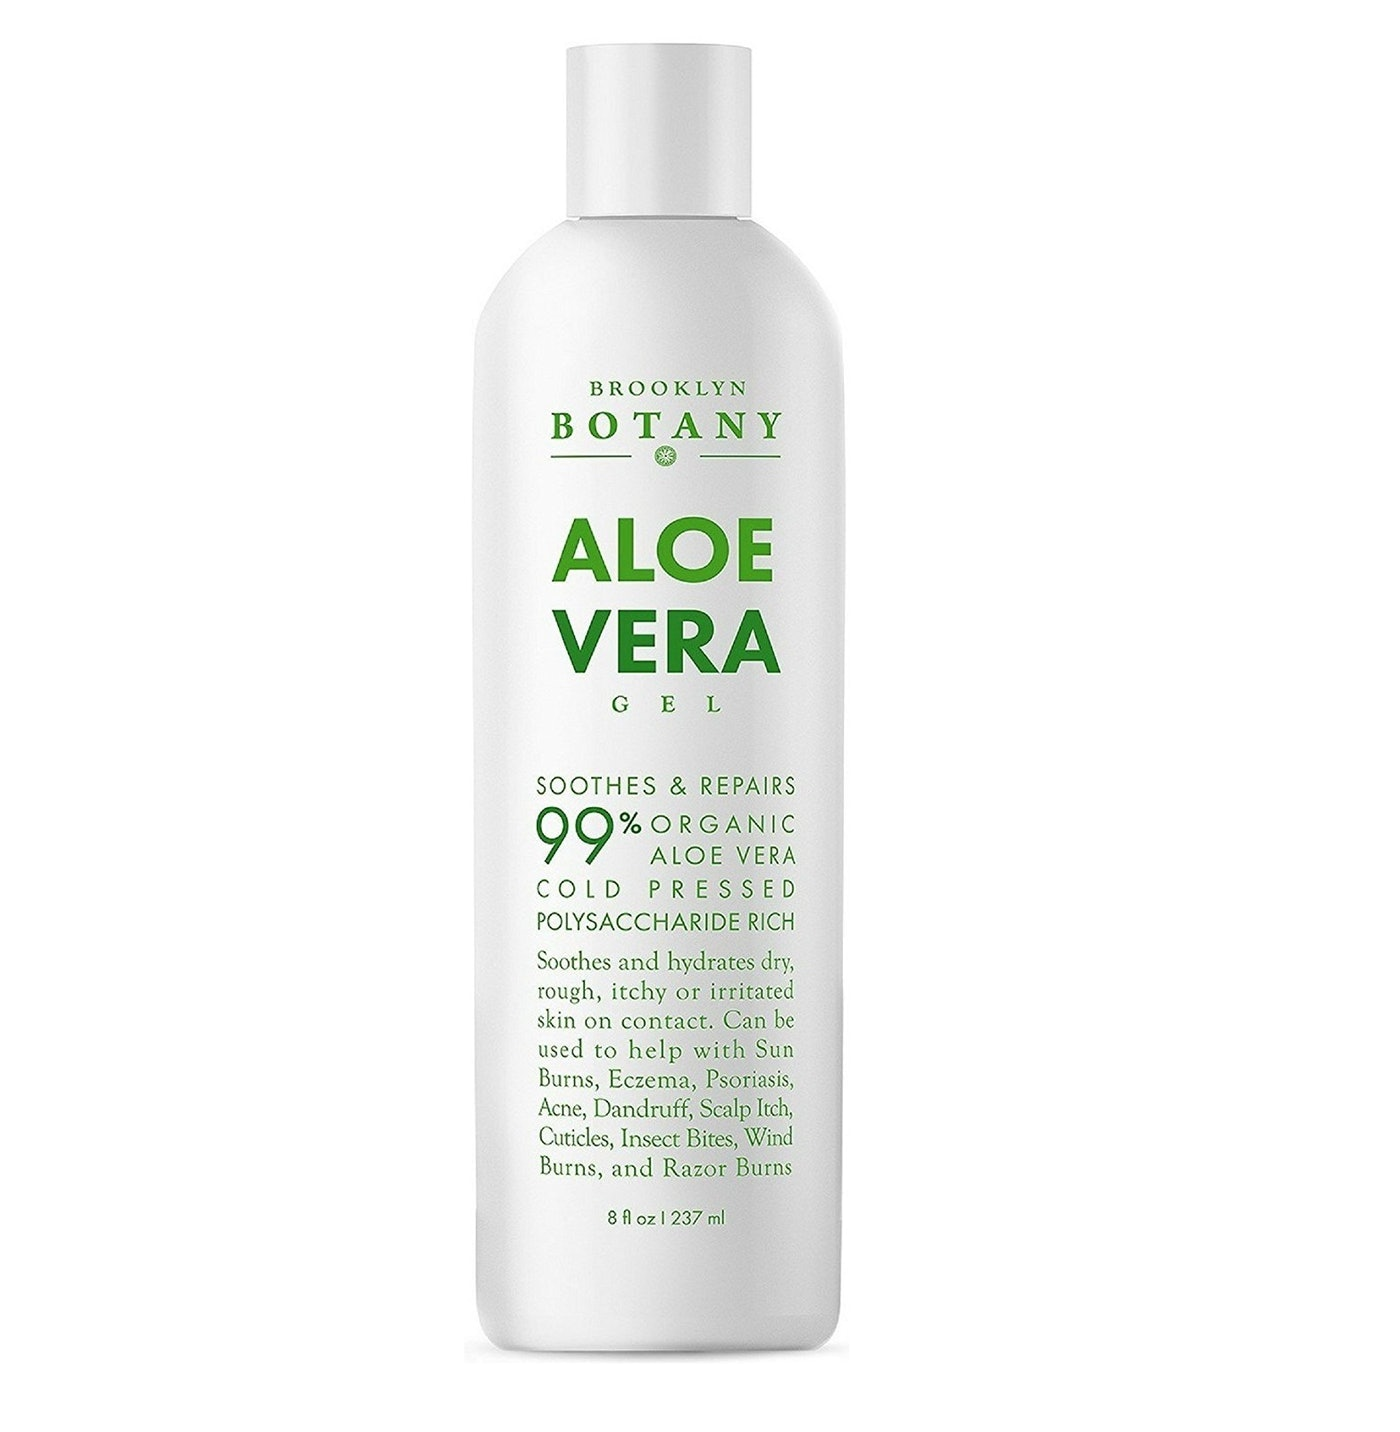 61 Sick Products That Cost Less Than 10 On Amazon Pure Baby Hand Ampamp Mouth Wipes 10amp039s Buy 2 Get 1 Free Aloe Vera